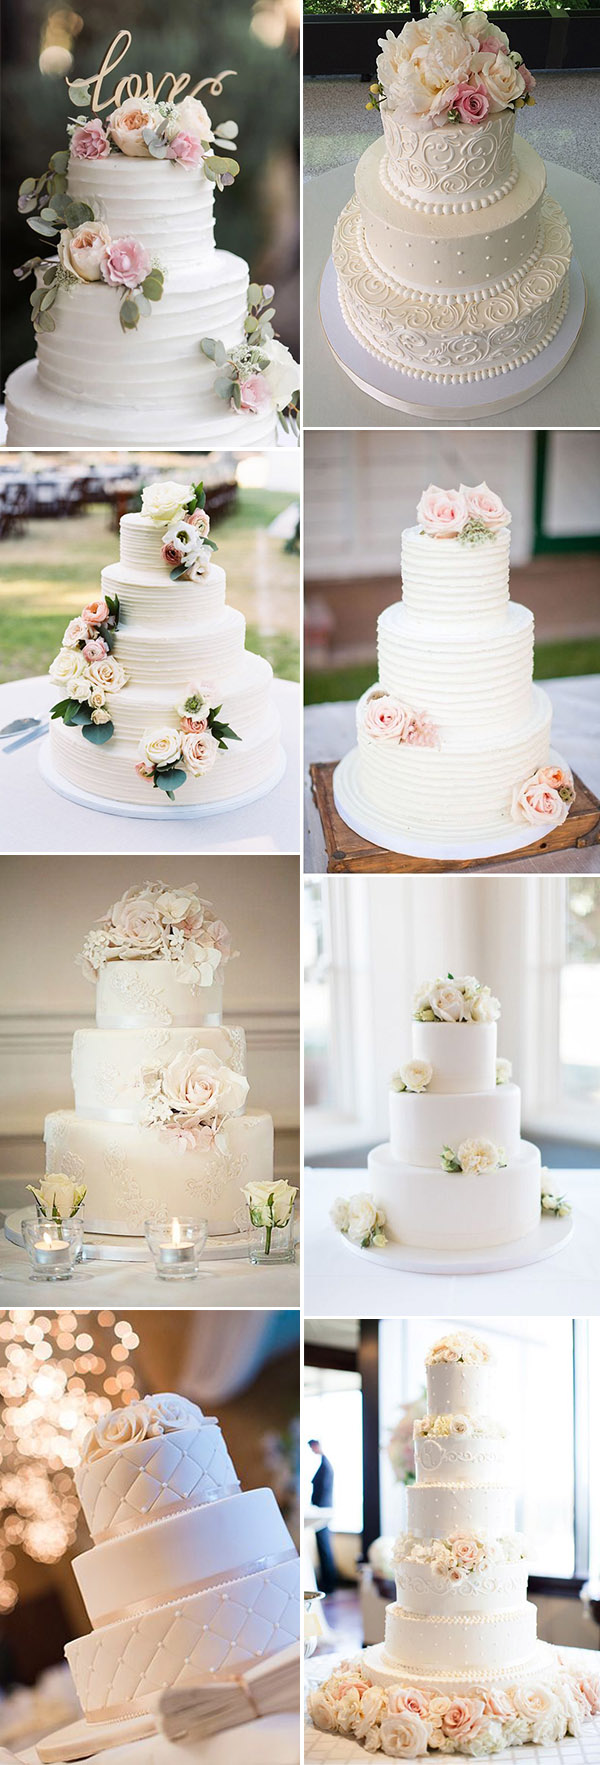 elegant and romantic wedding cake ideas